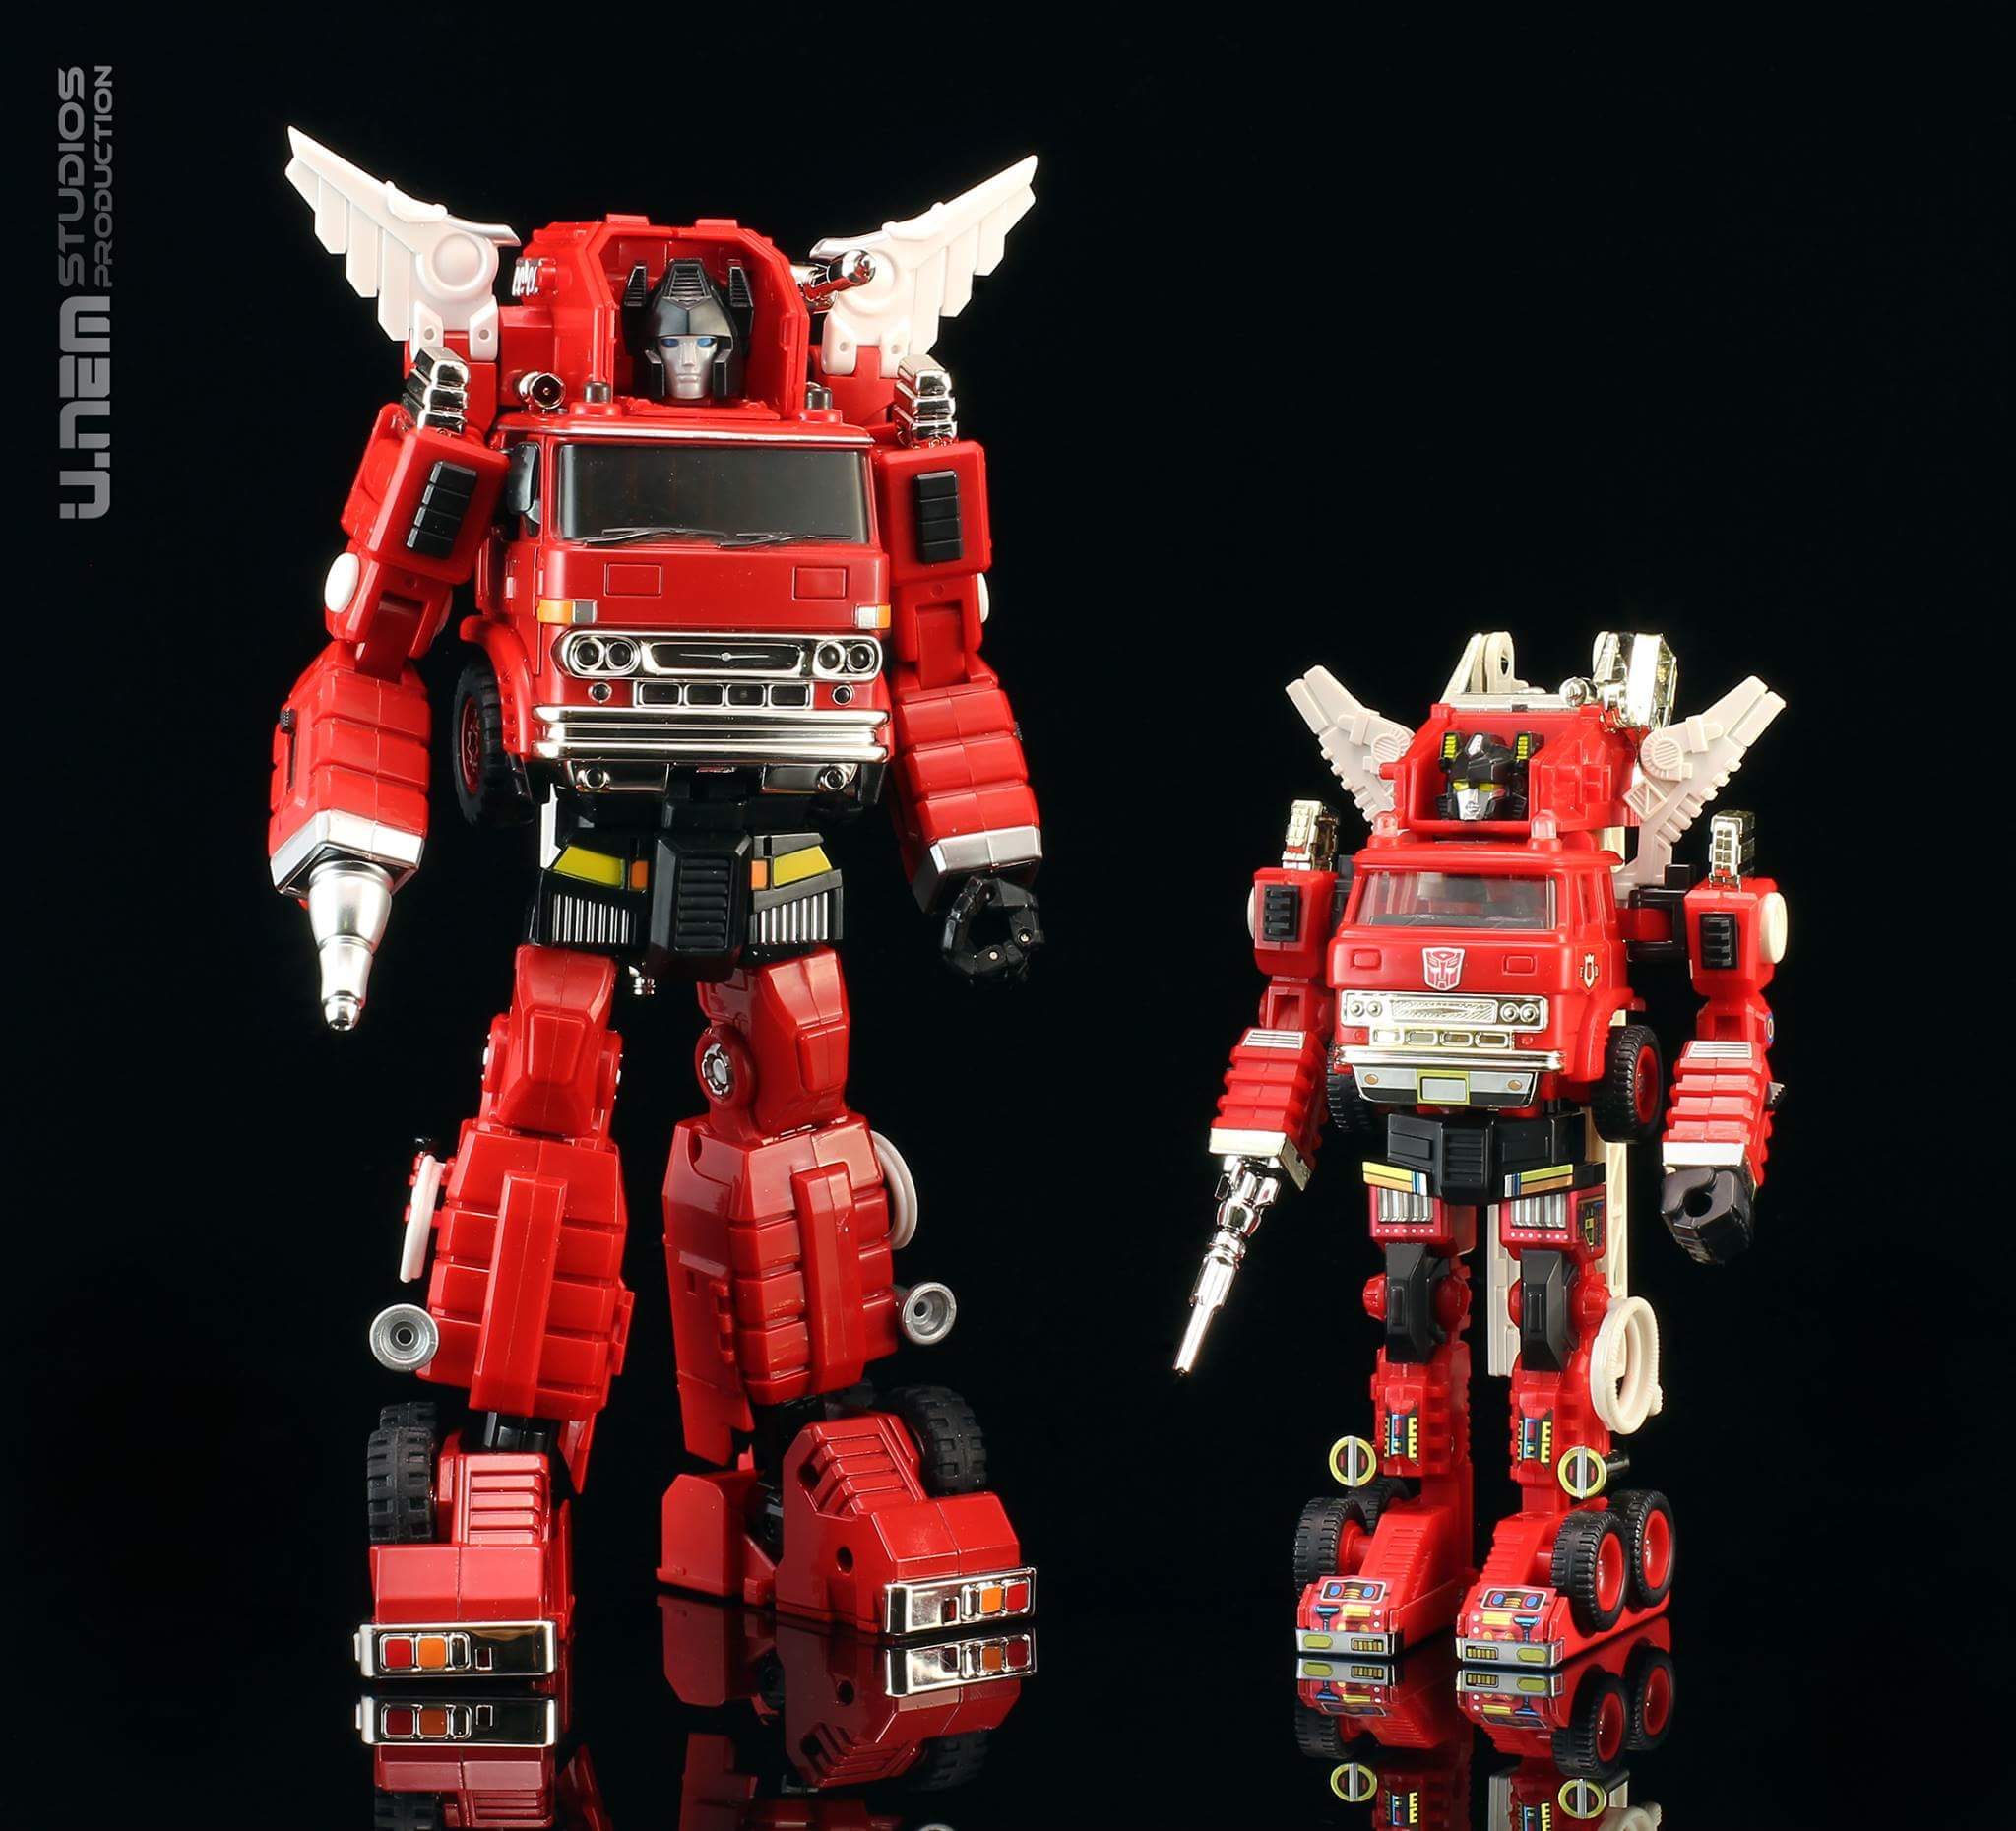 [Ocular Max] Produit Tiers - Jouet PS-03 Backdraft (aka Inferno) + PS-08 Kojin (aka Artfire) - Page 2 Ir7VgoSt